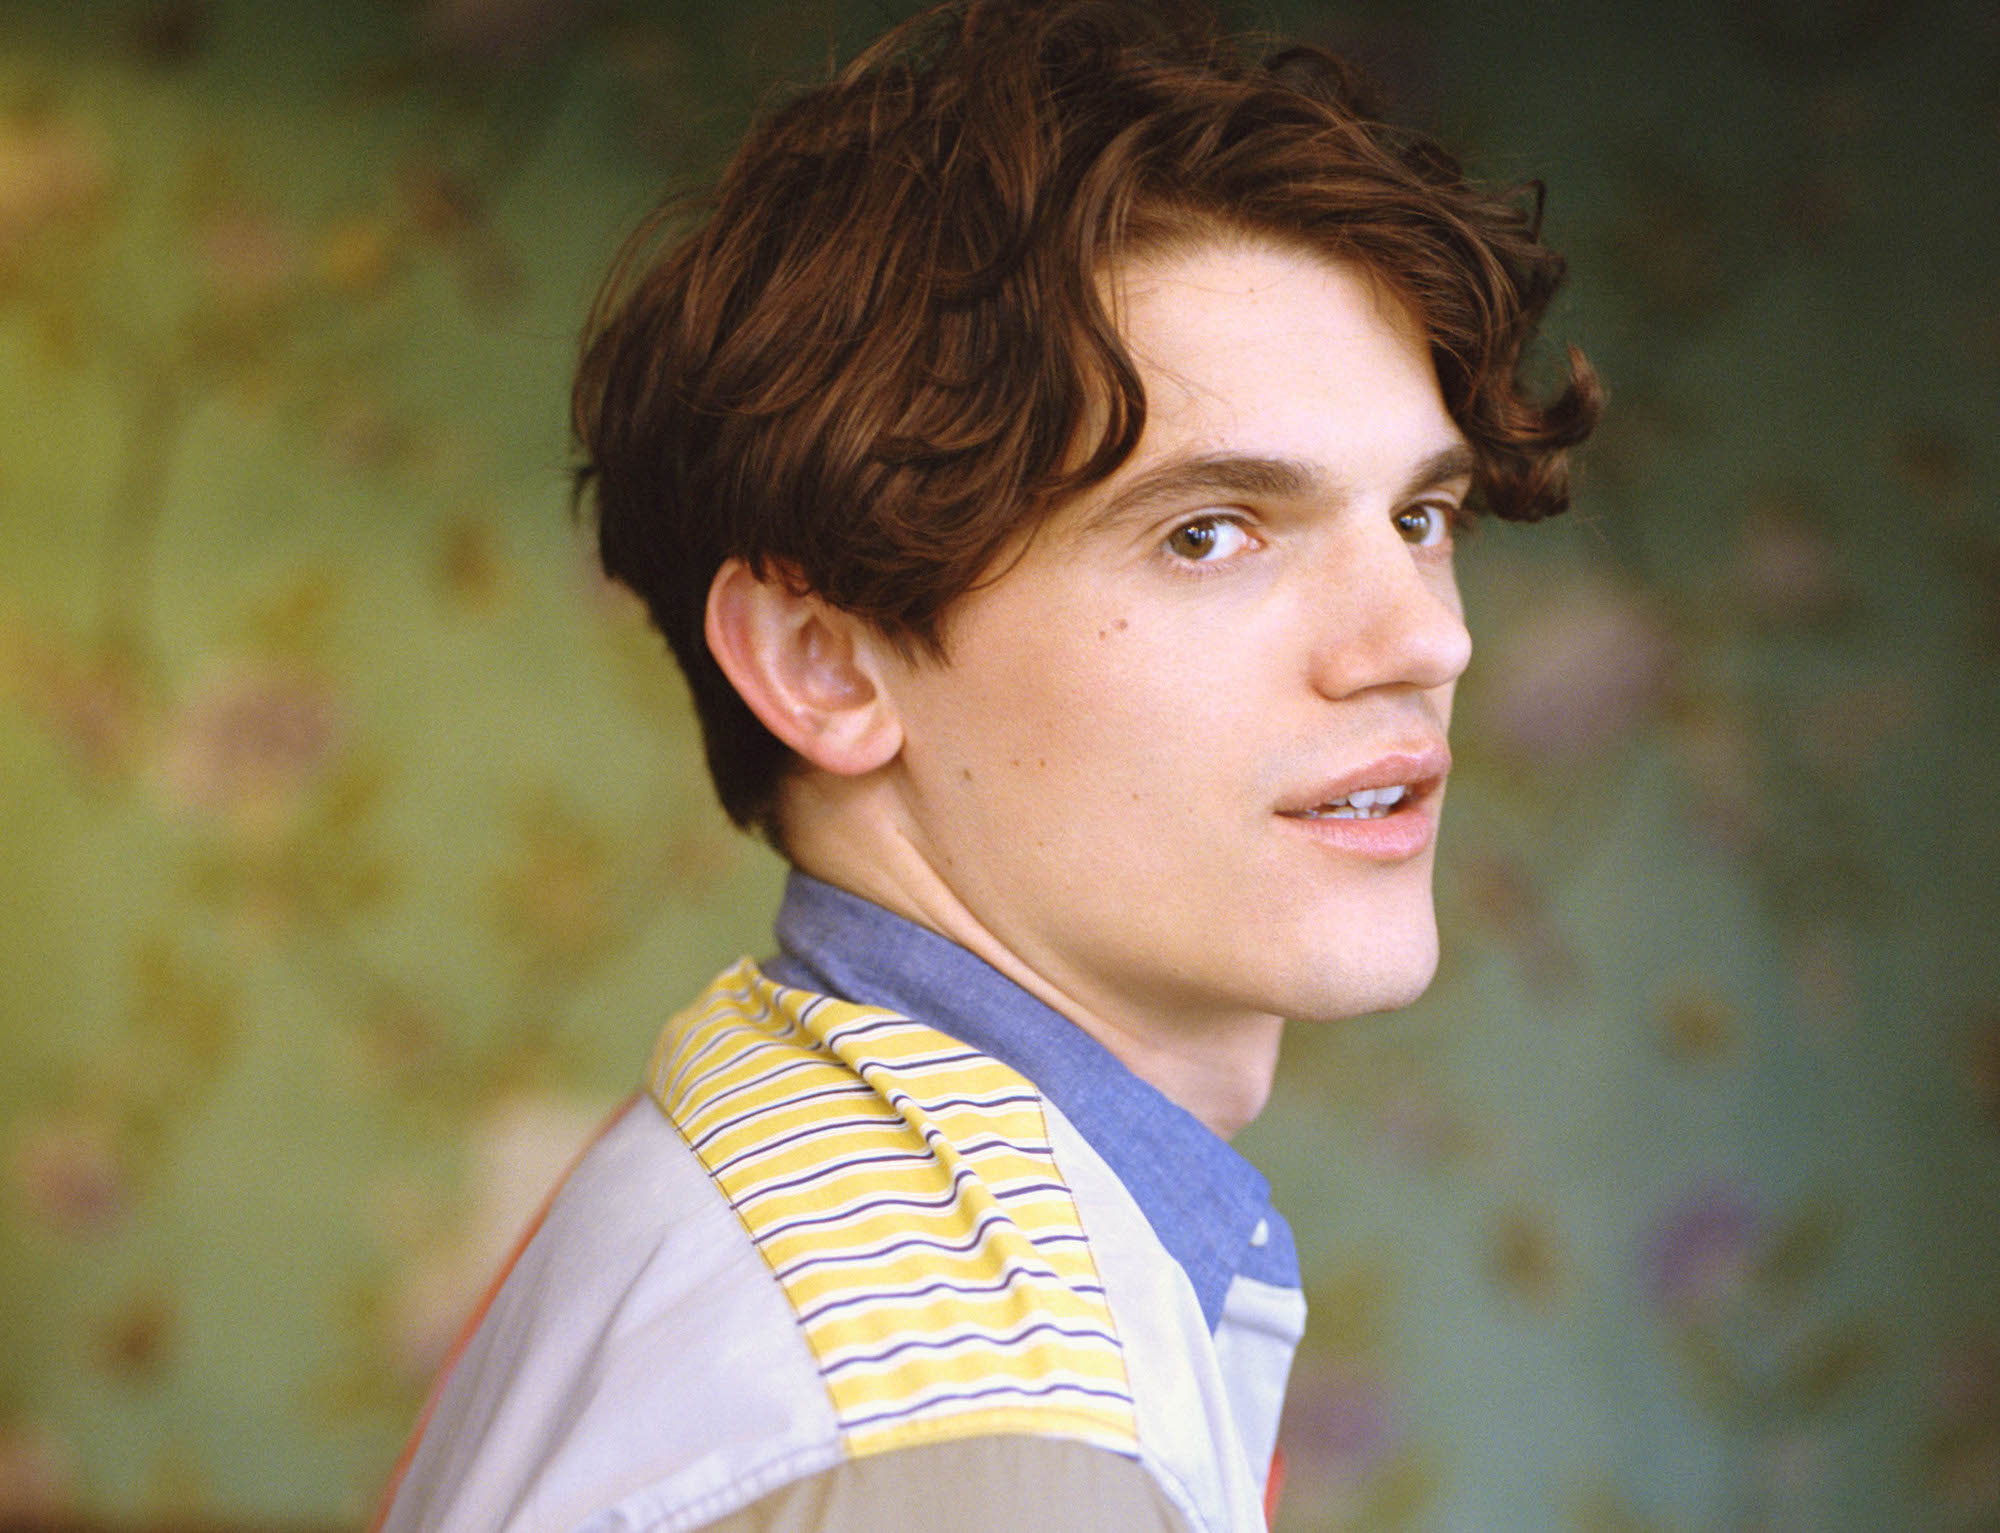 Edward Bluemel Killing Eve interview from the Spring 19 issue closeup